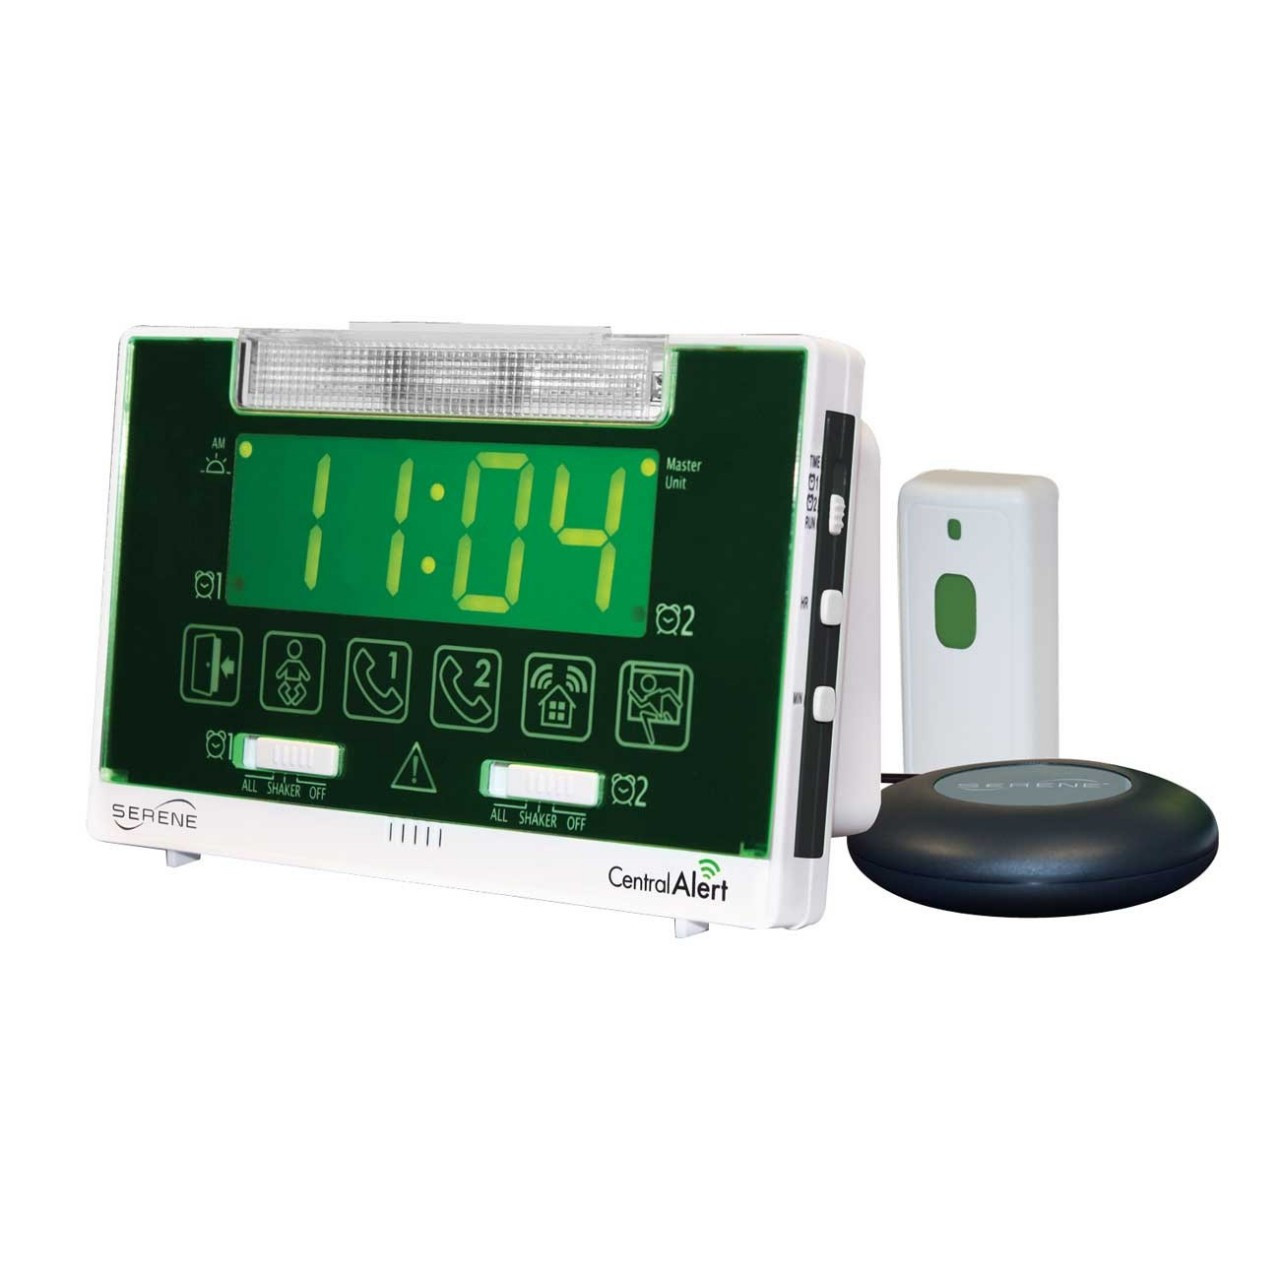 a05004c84 CentralAlert CA360 Door Phone Clock Notification System Master Unit.  Loading zoom